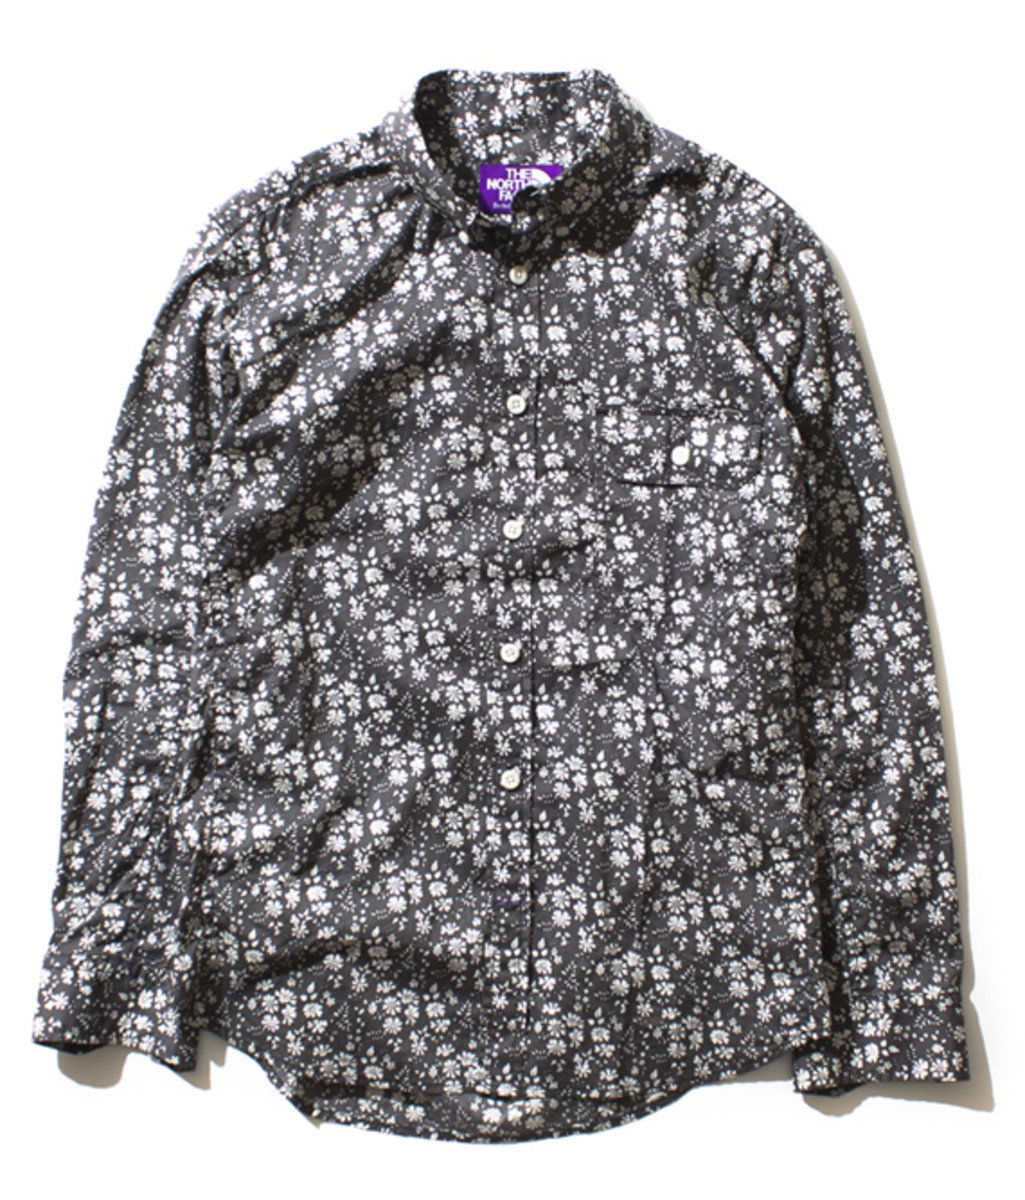 liberty-the-north-face-purple-label-black-and-white-collection-011